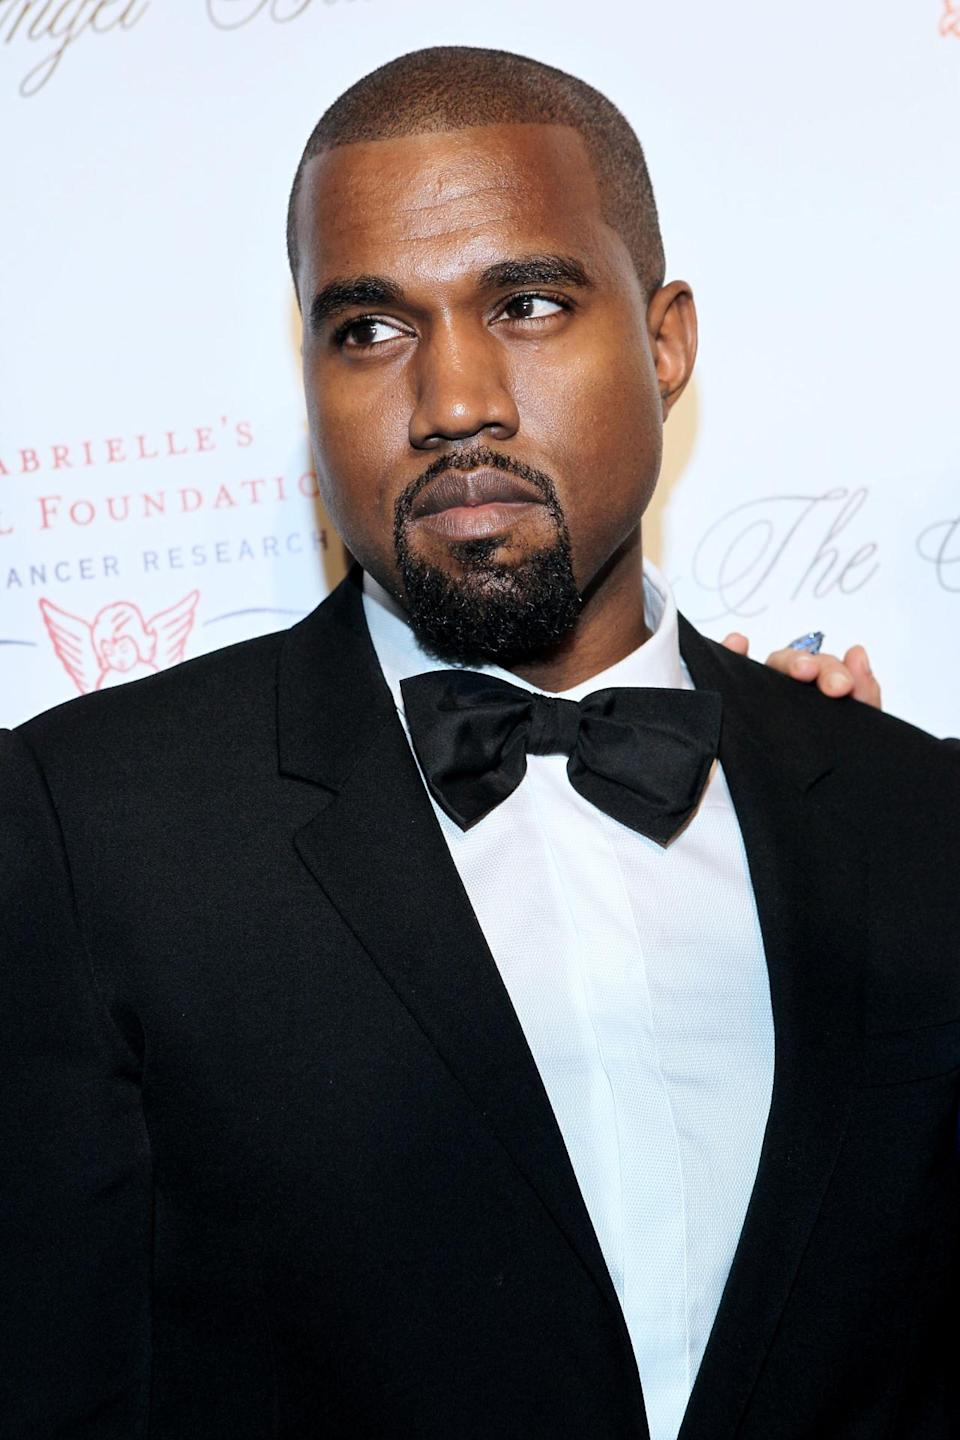 <p>These days, it's harder to catch Kanye West smiling—but you can always count on him to dress sharp. <i>(Photo: Getty Images)</i></p>